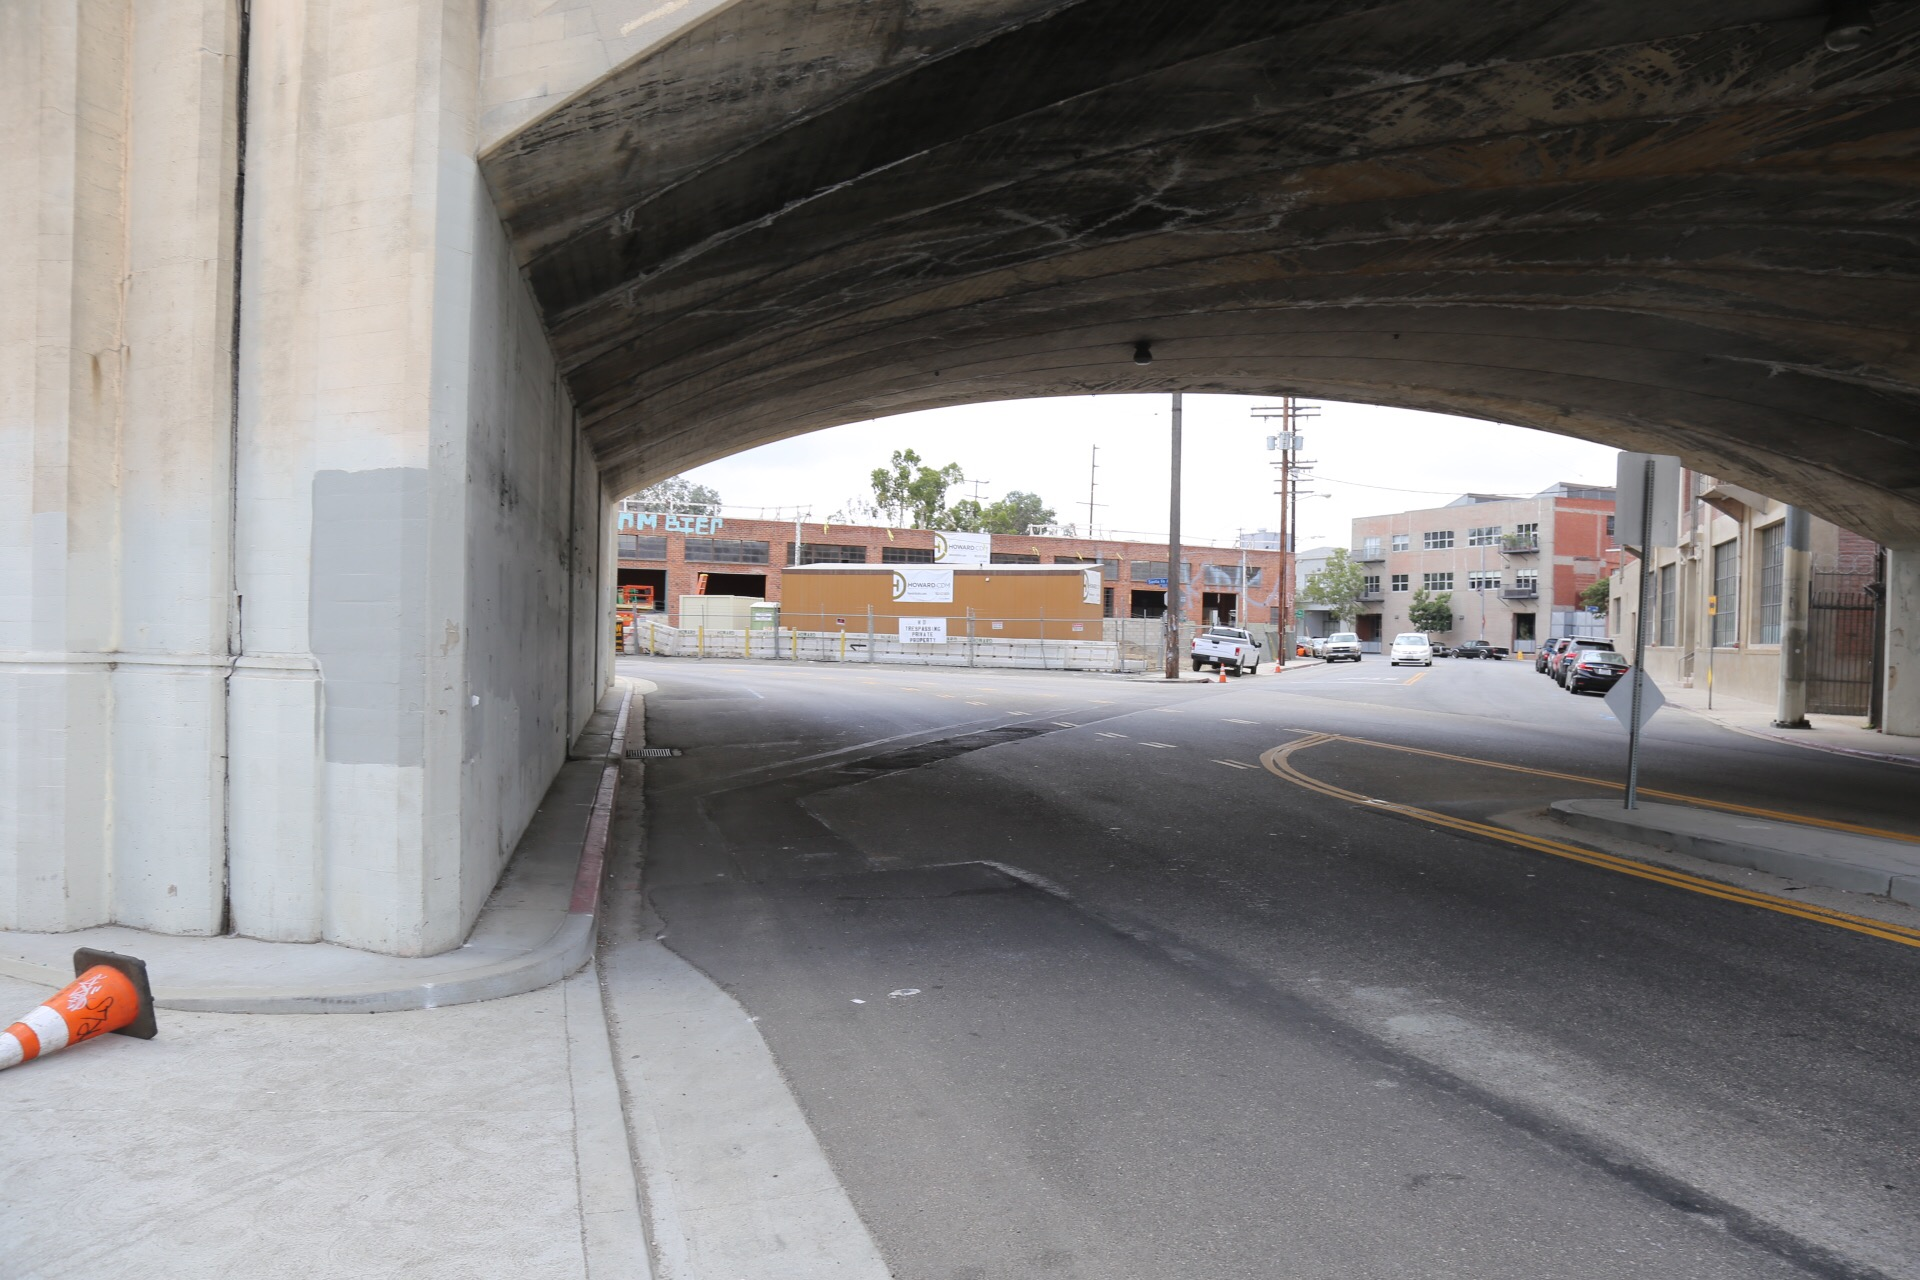 One or the many missing links for pedestrians in the Arts District. The sidewalk disappears going south on Santa Fe with no crossing to Mateo in sight.